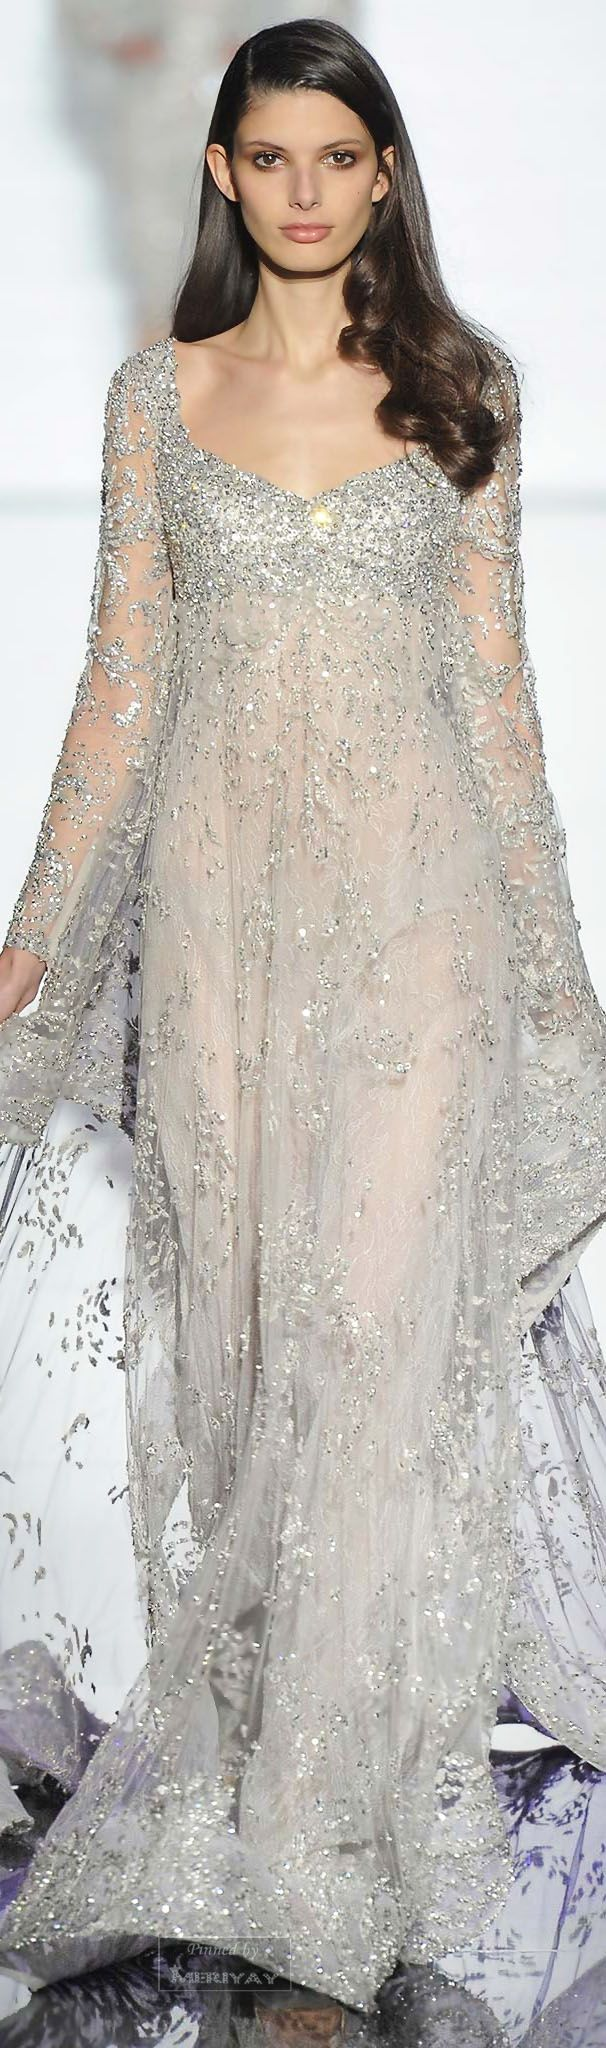 Zuhair Murad.Spring 2015 Couture.: